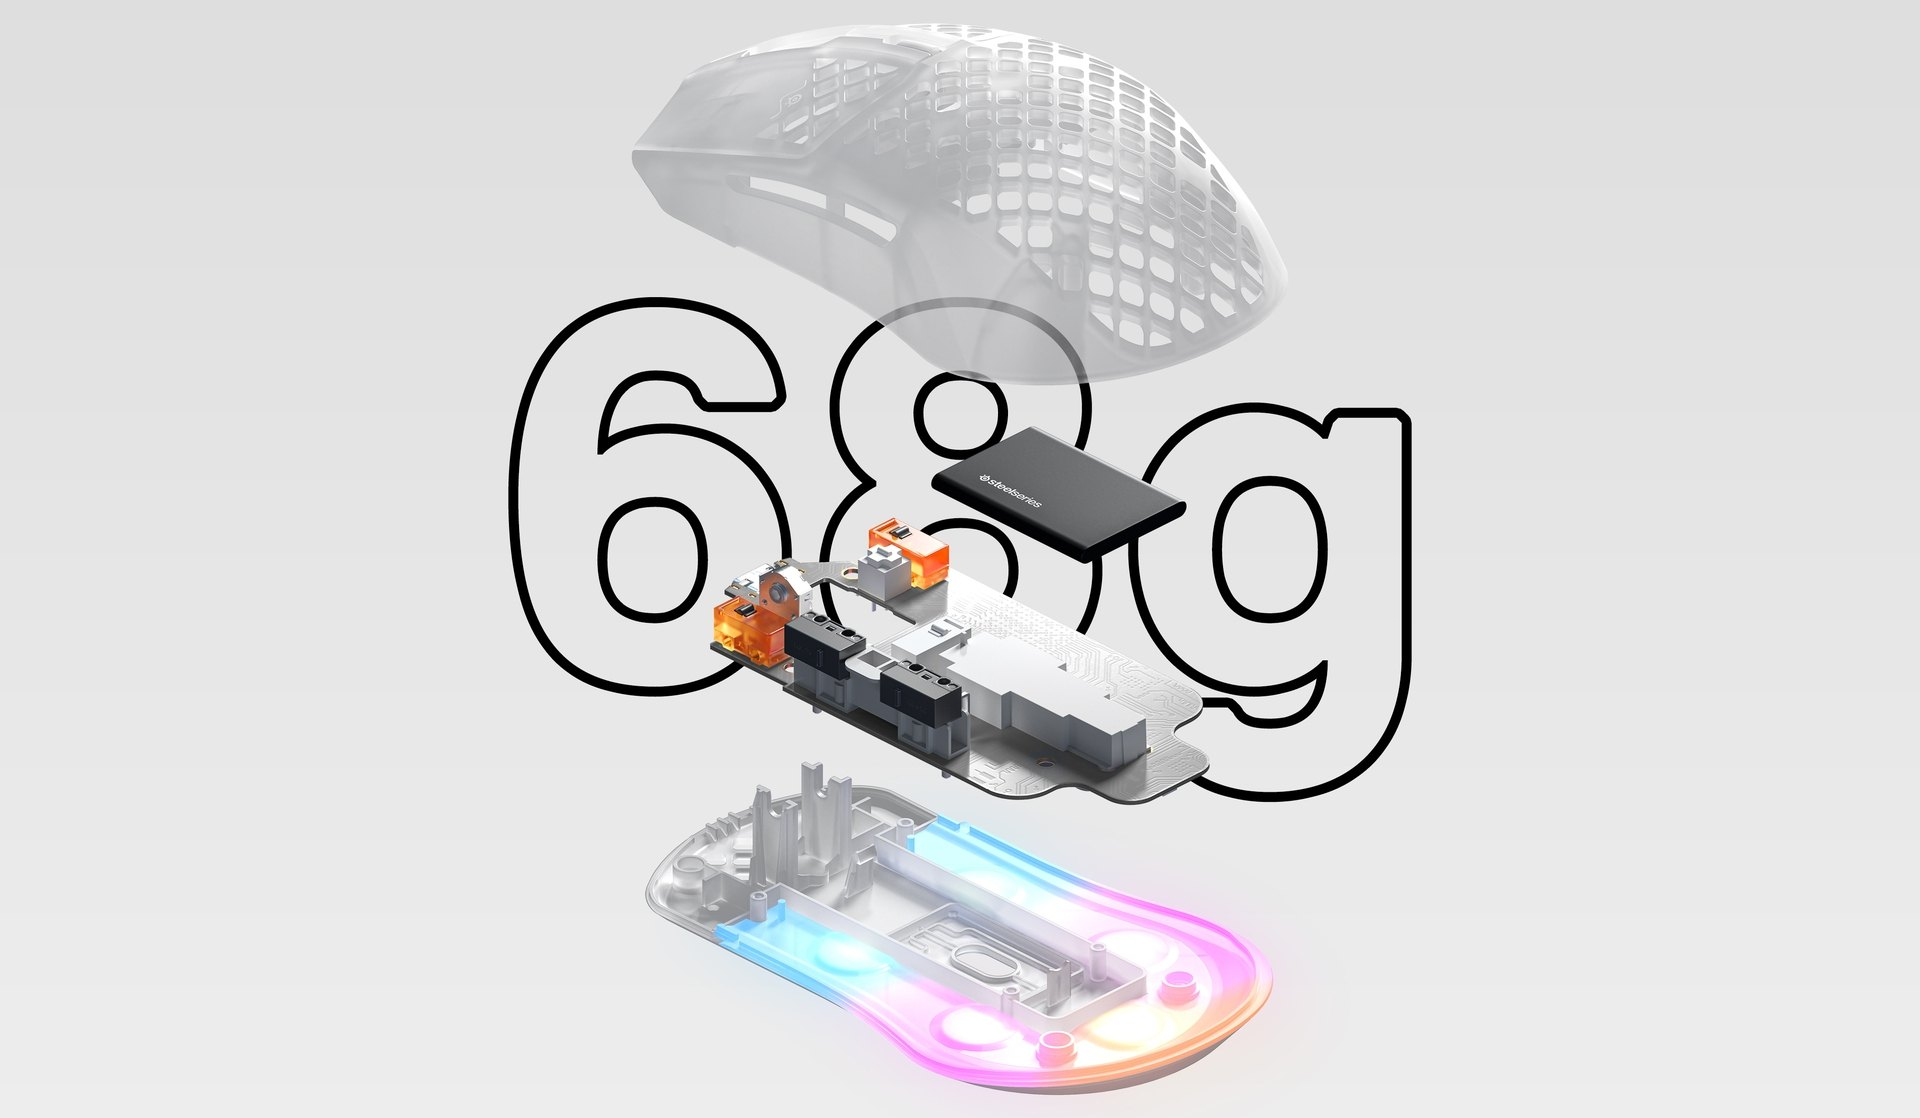 An illustration showing the lightweight components of the Aerox 3 Wireless Ghost mouse. Text reads: 68 Grams.